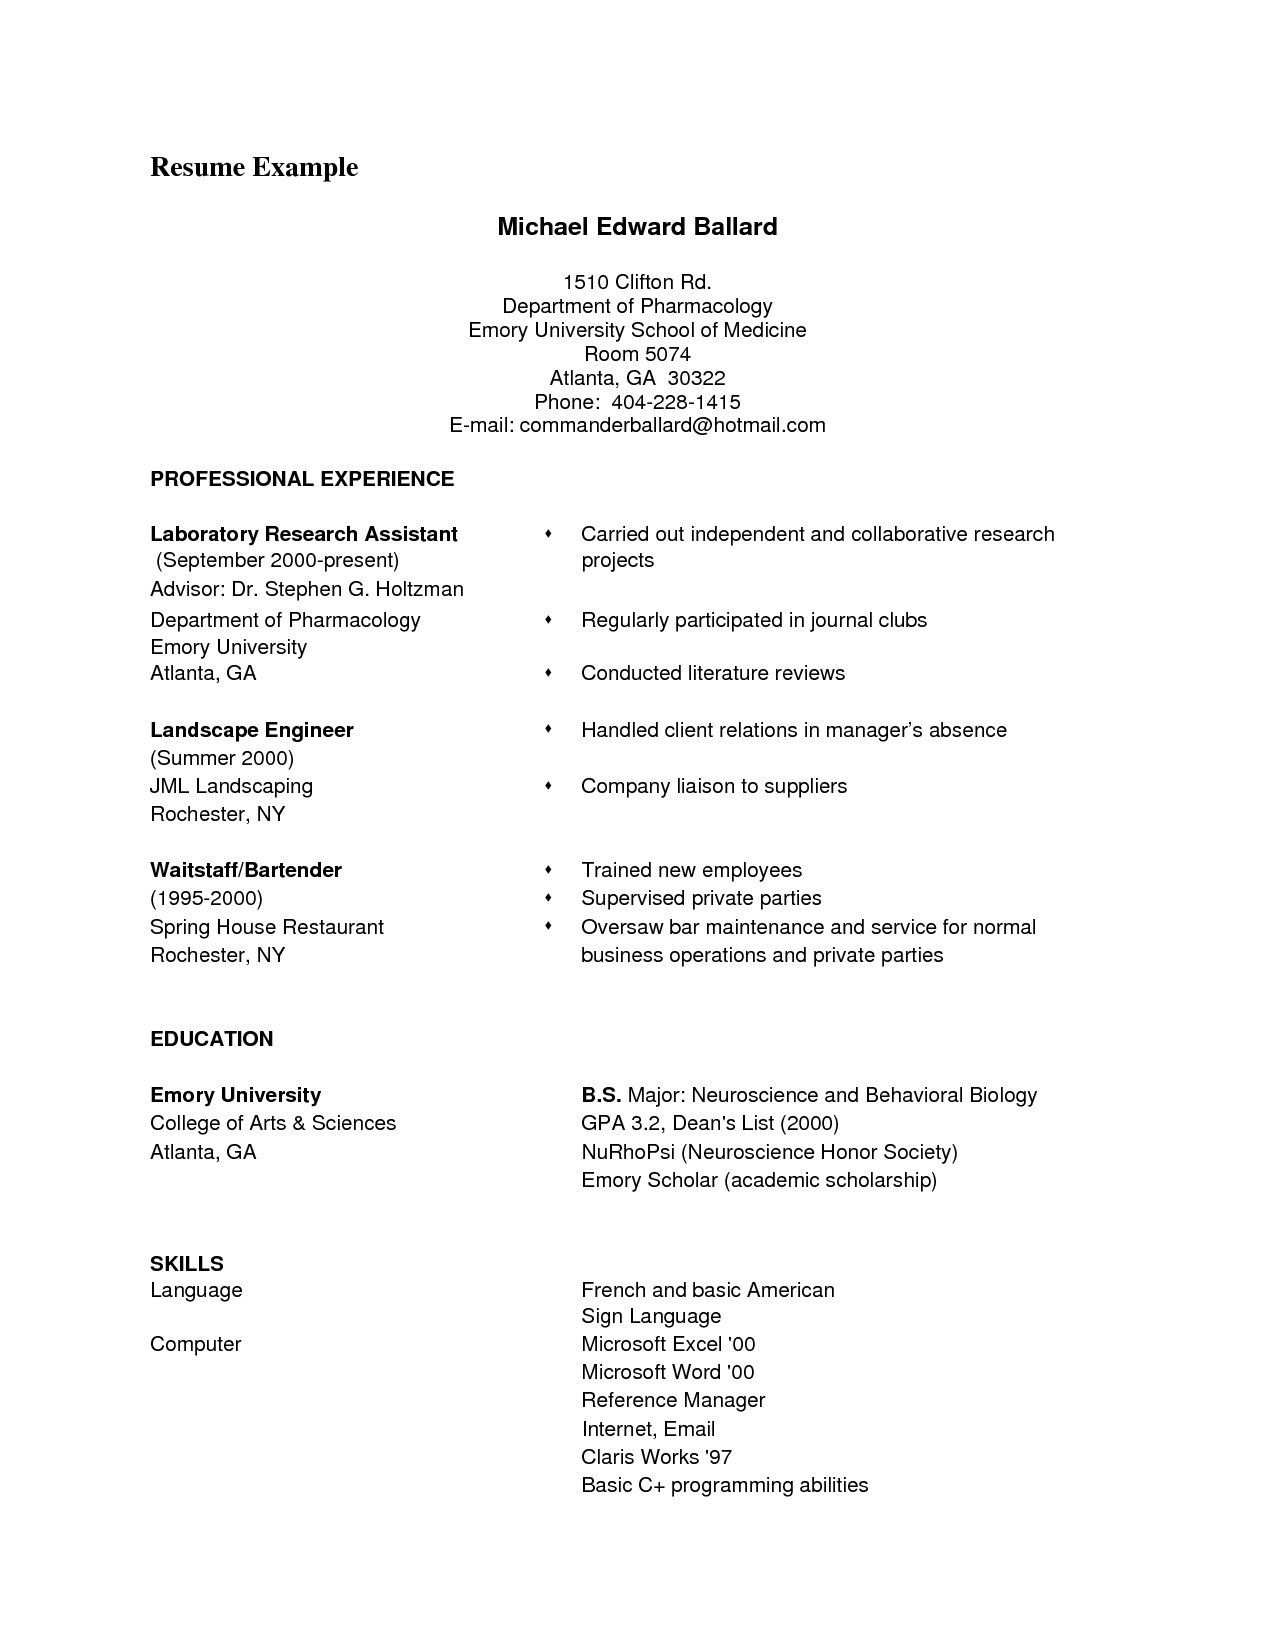 Scientific Resume Template - Classic Resume Templates ¢Ë†Å¡ Powerpoint Templates for Biology New